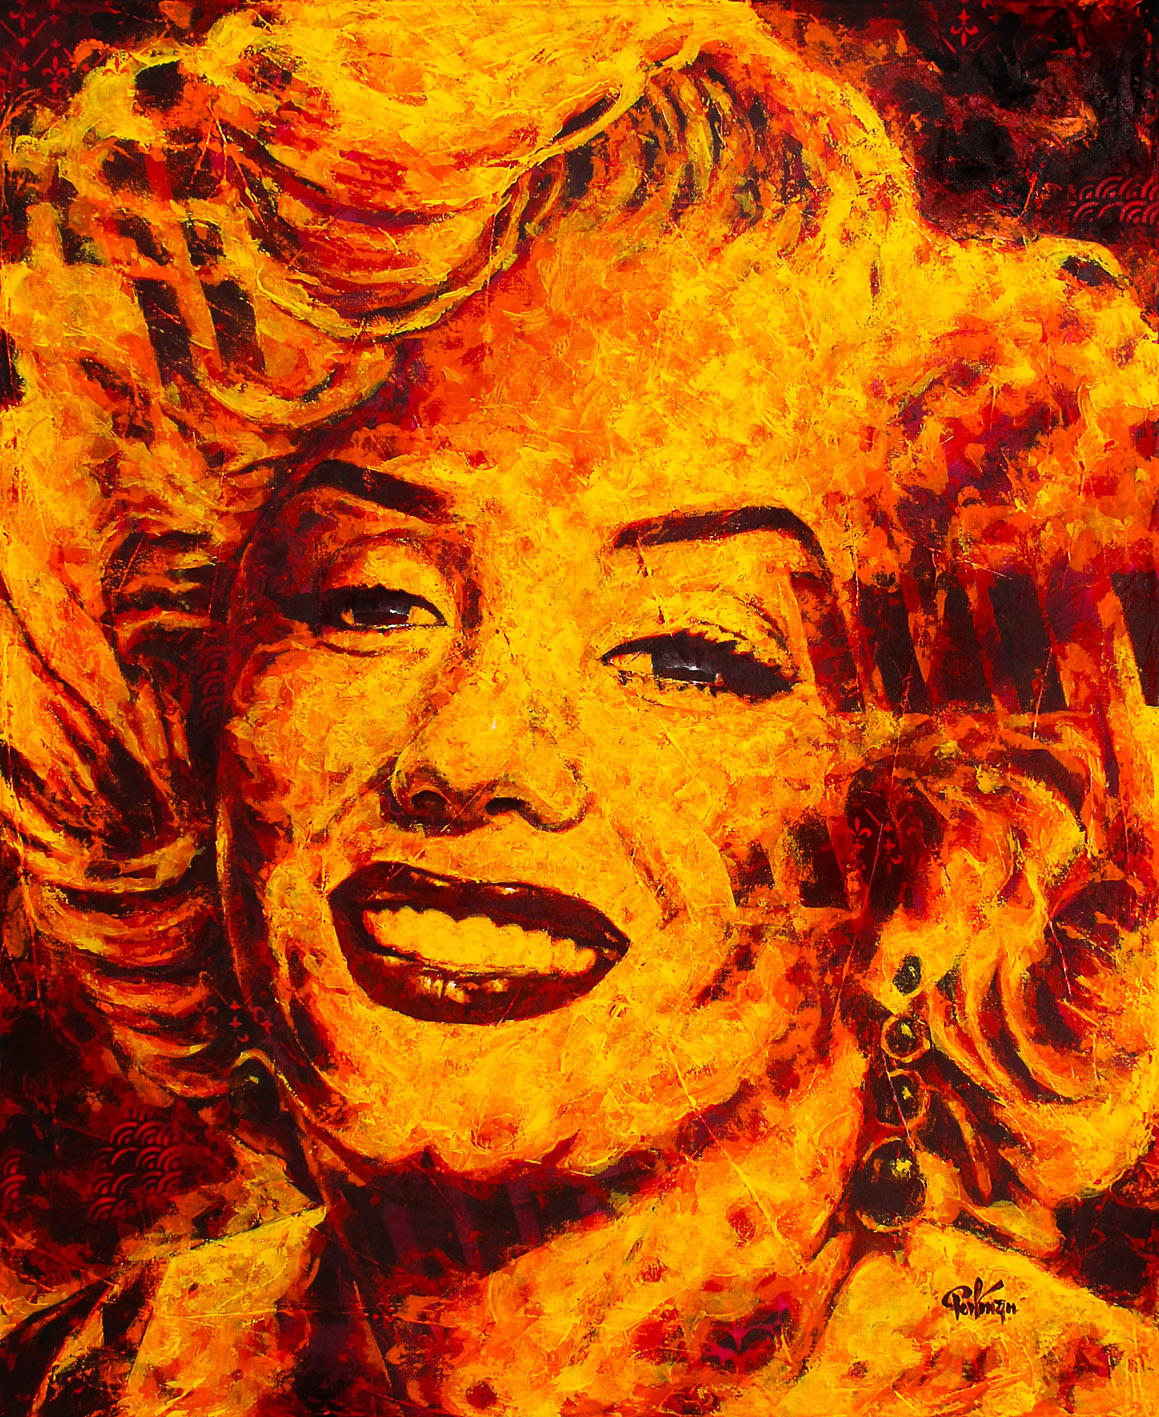 Fire_Marilyn#4_menor